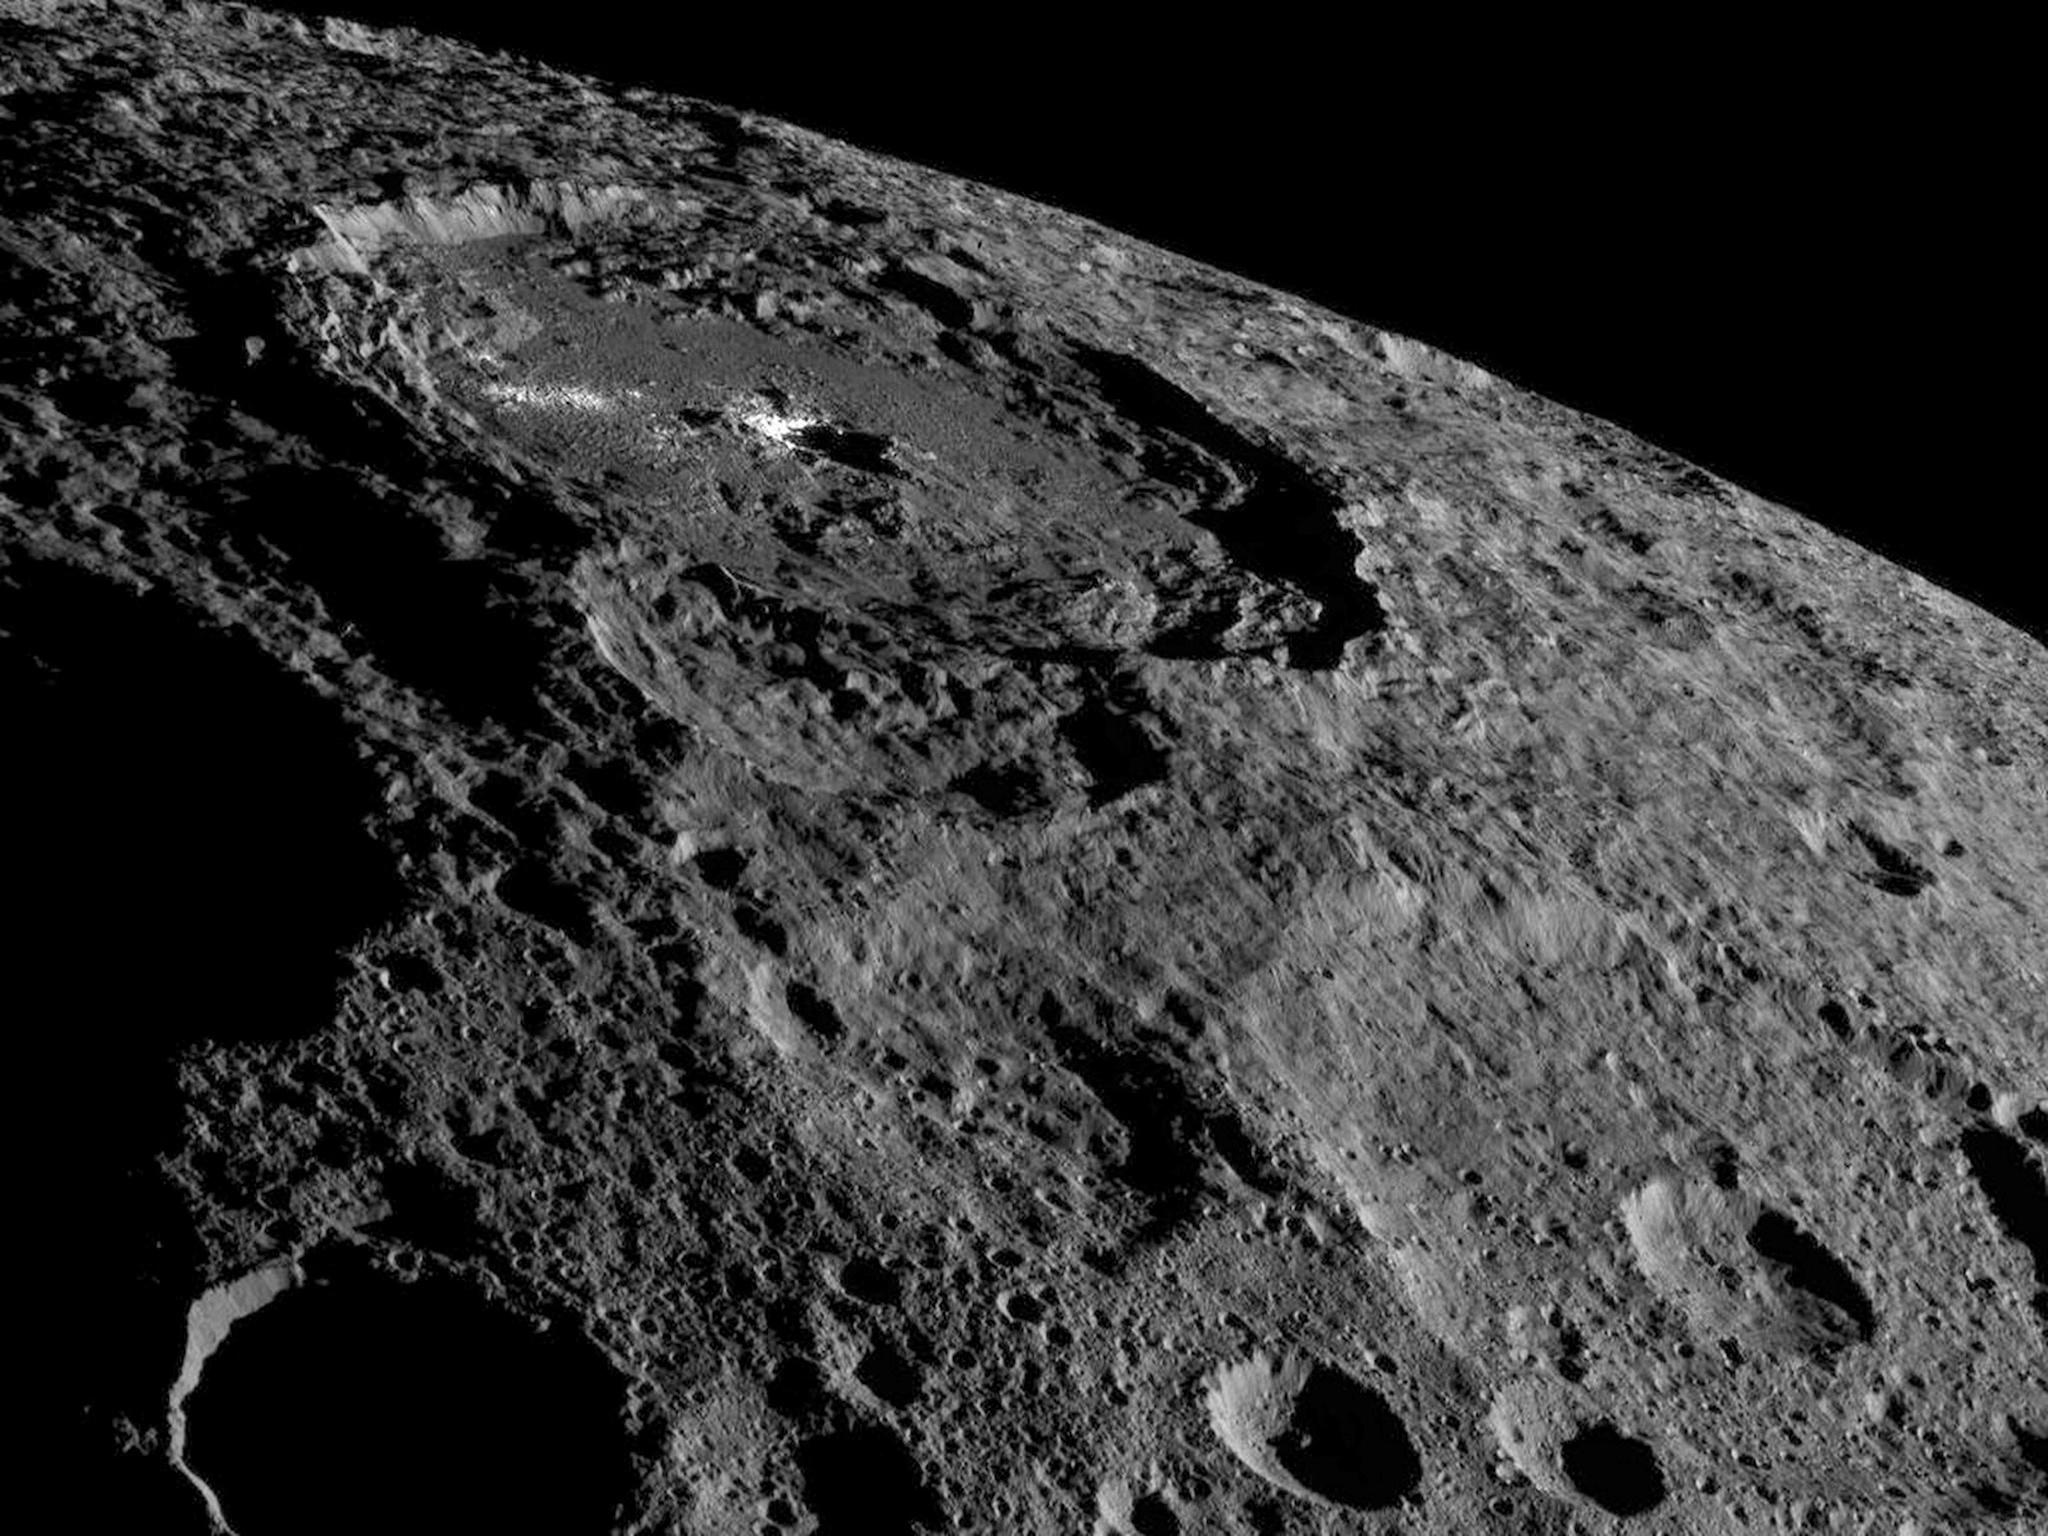 Ceres: Dwarf planet in our own solar system is 'rich in organic matter', announces Nasa